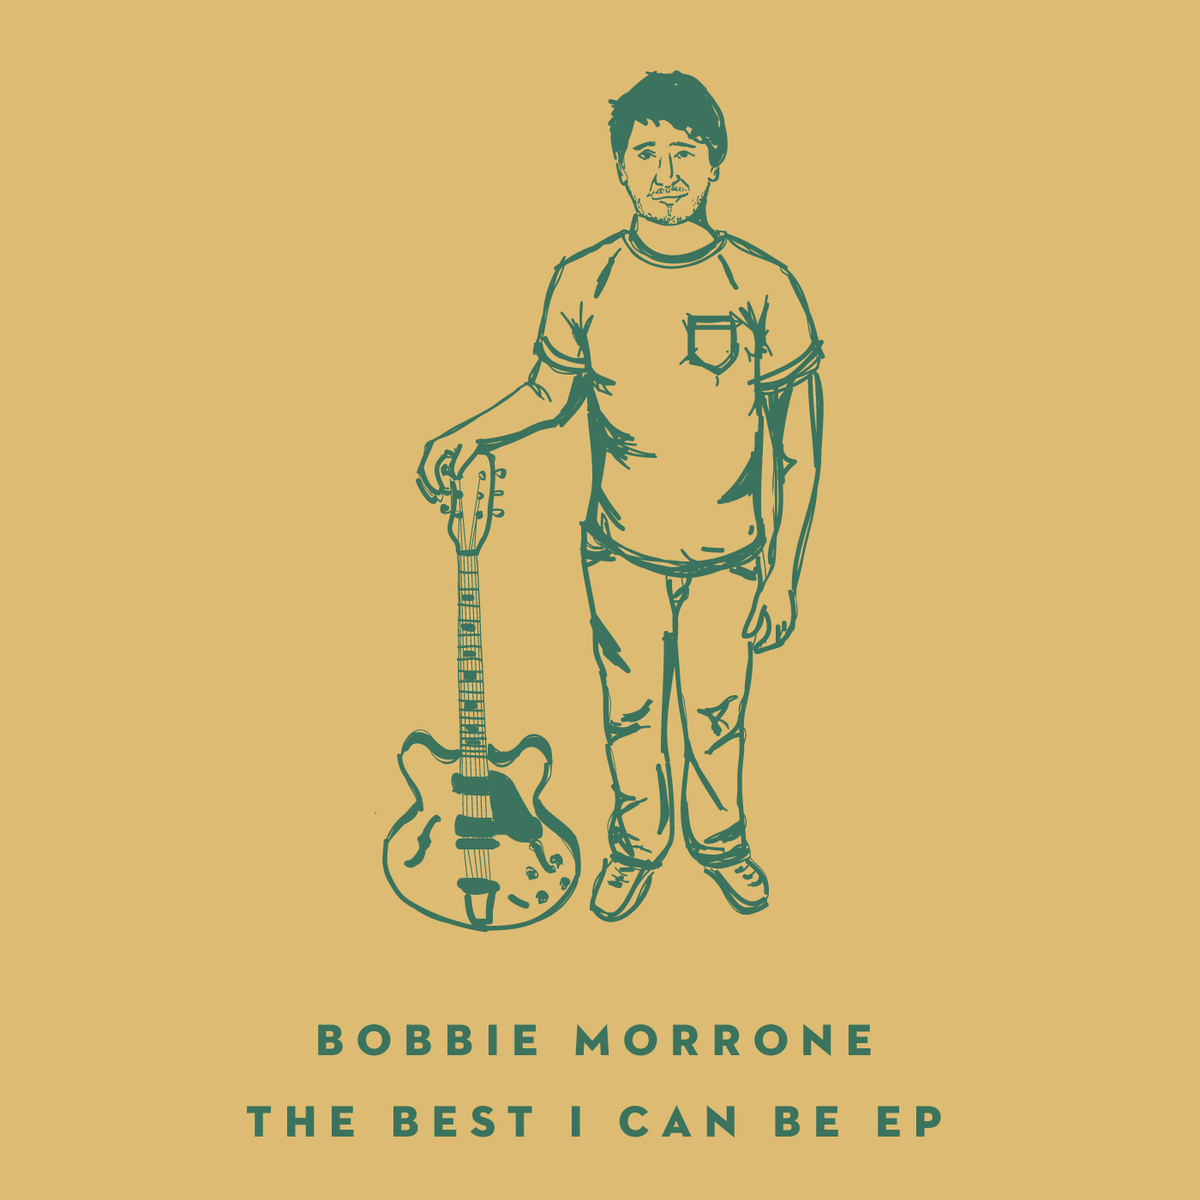 BOBBIE MORRONE - The Best I Can Be EP